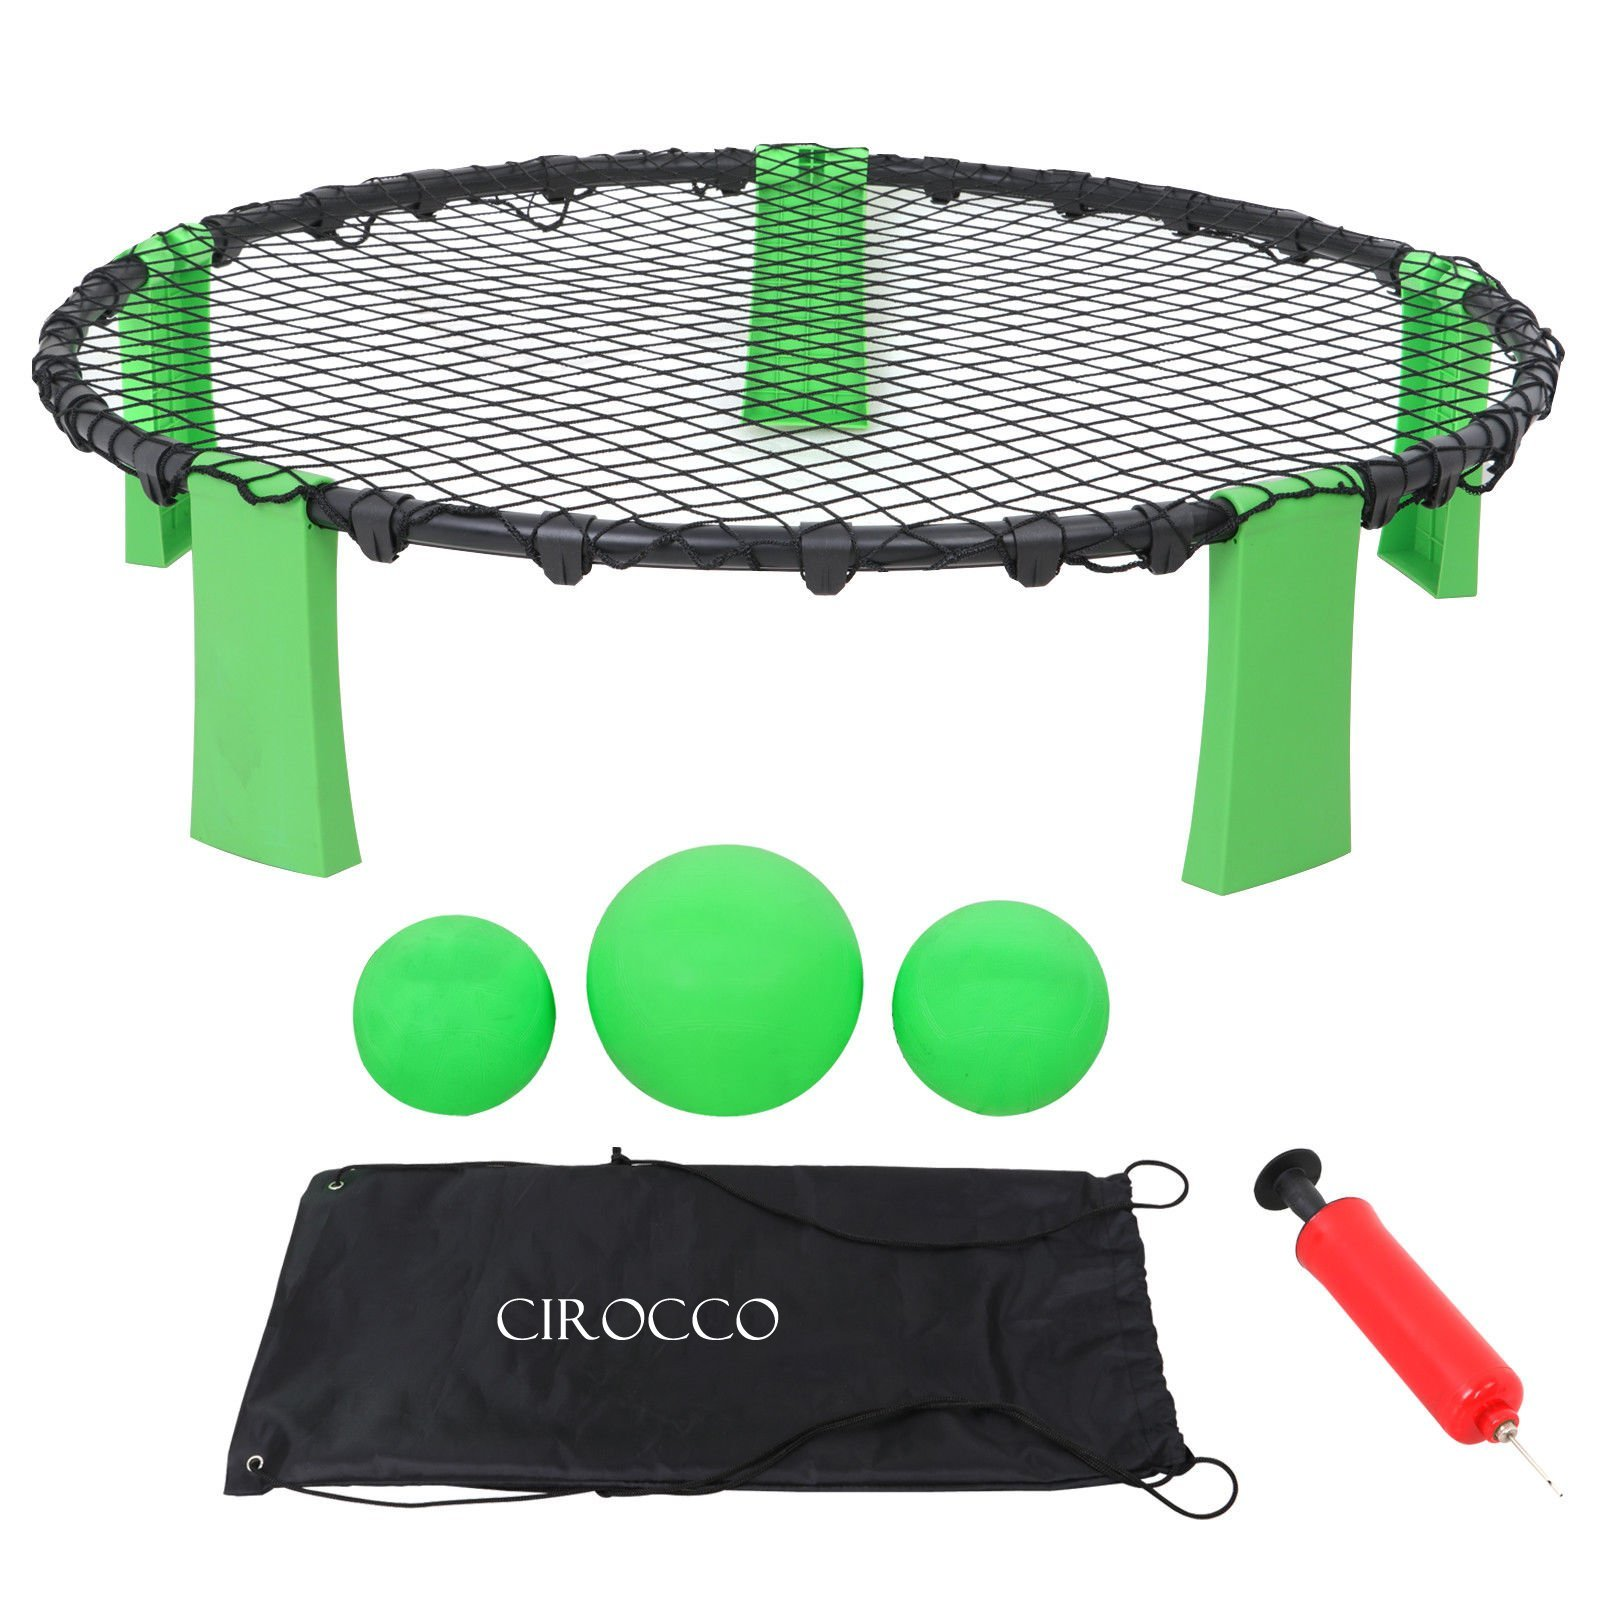 Cirocco Slam Ball Sports Game Set - Volleyball Toss Game Set - Ball Spike Battle Game   Outdoor Indoor Gift for Adult Teen Family Friend   Ideal for Yard Lawn Beach Tailgate Garden Party   Super Fun